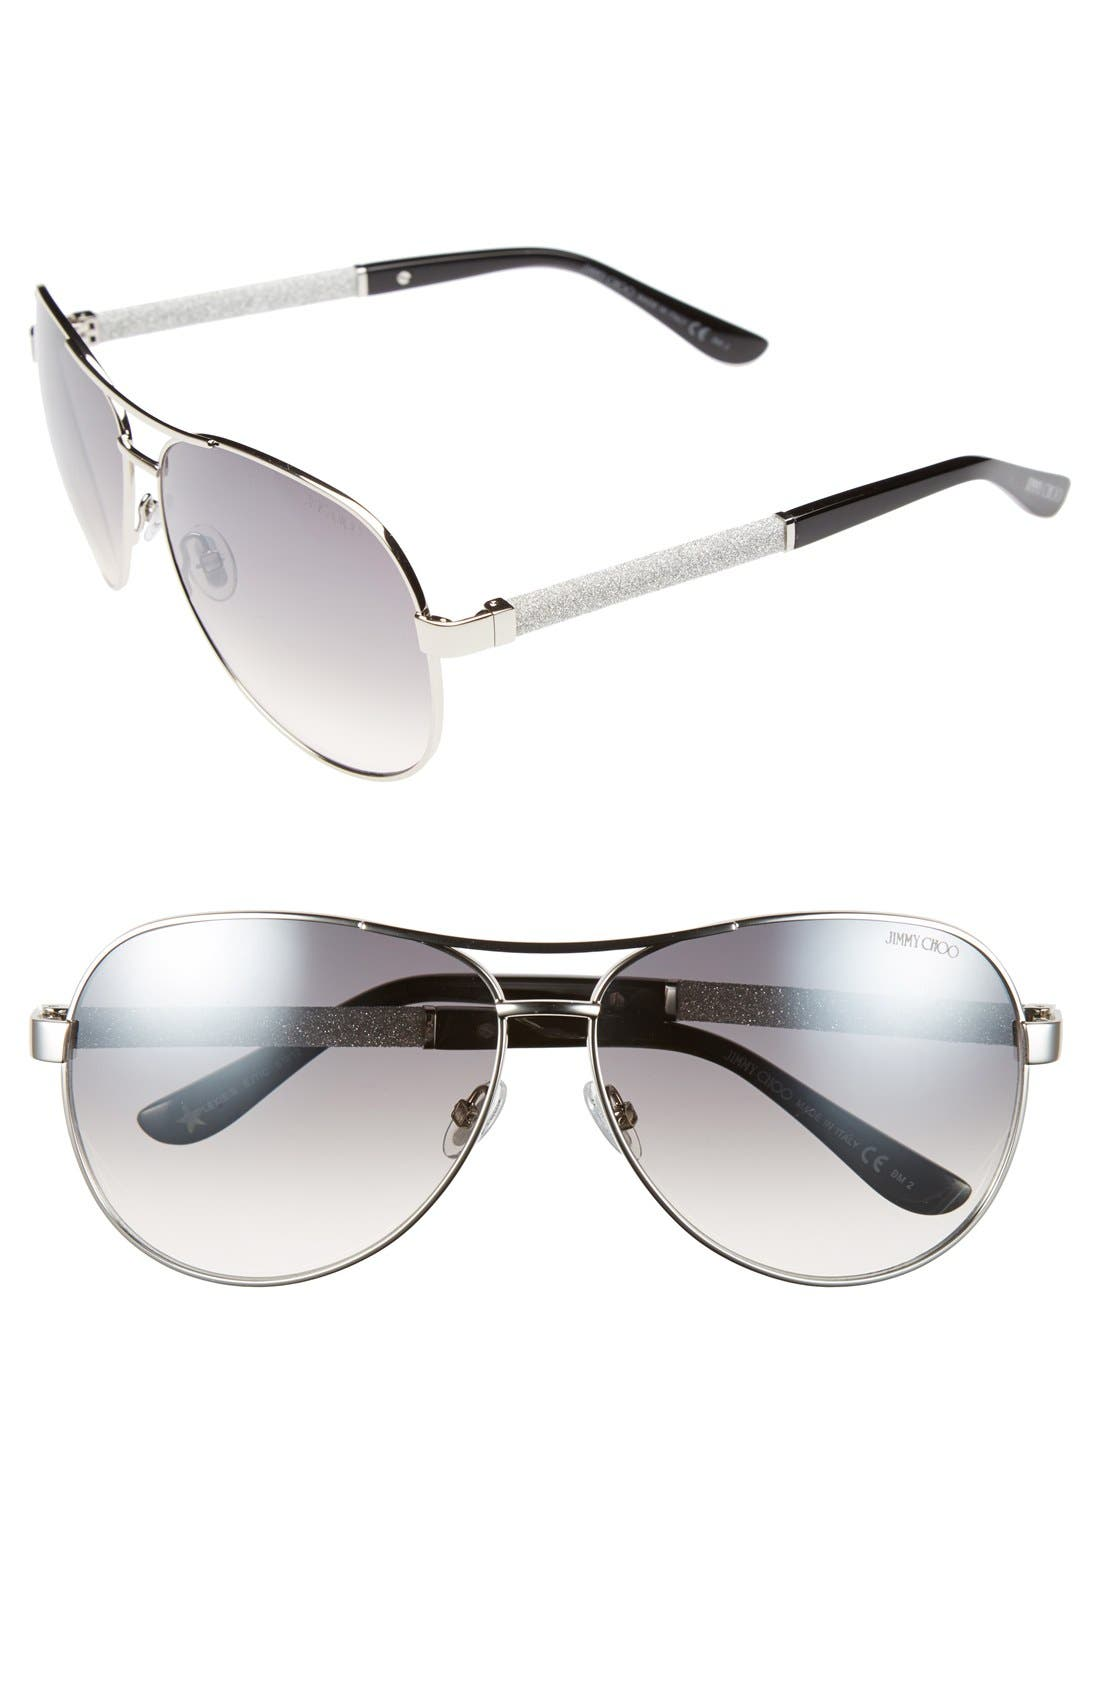 Alternate Image 1 Selected - Jimmy Choo 61mm Aviator Sunglasses